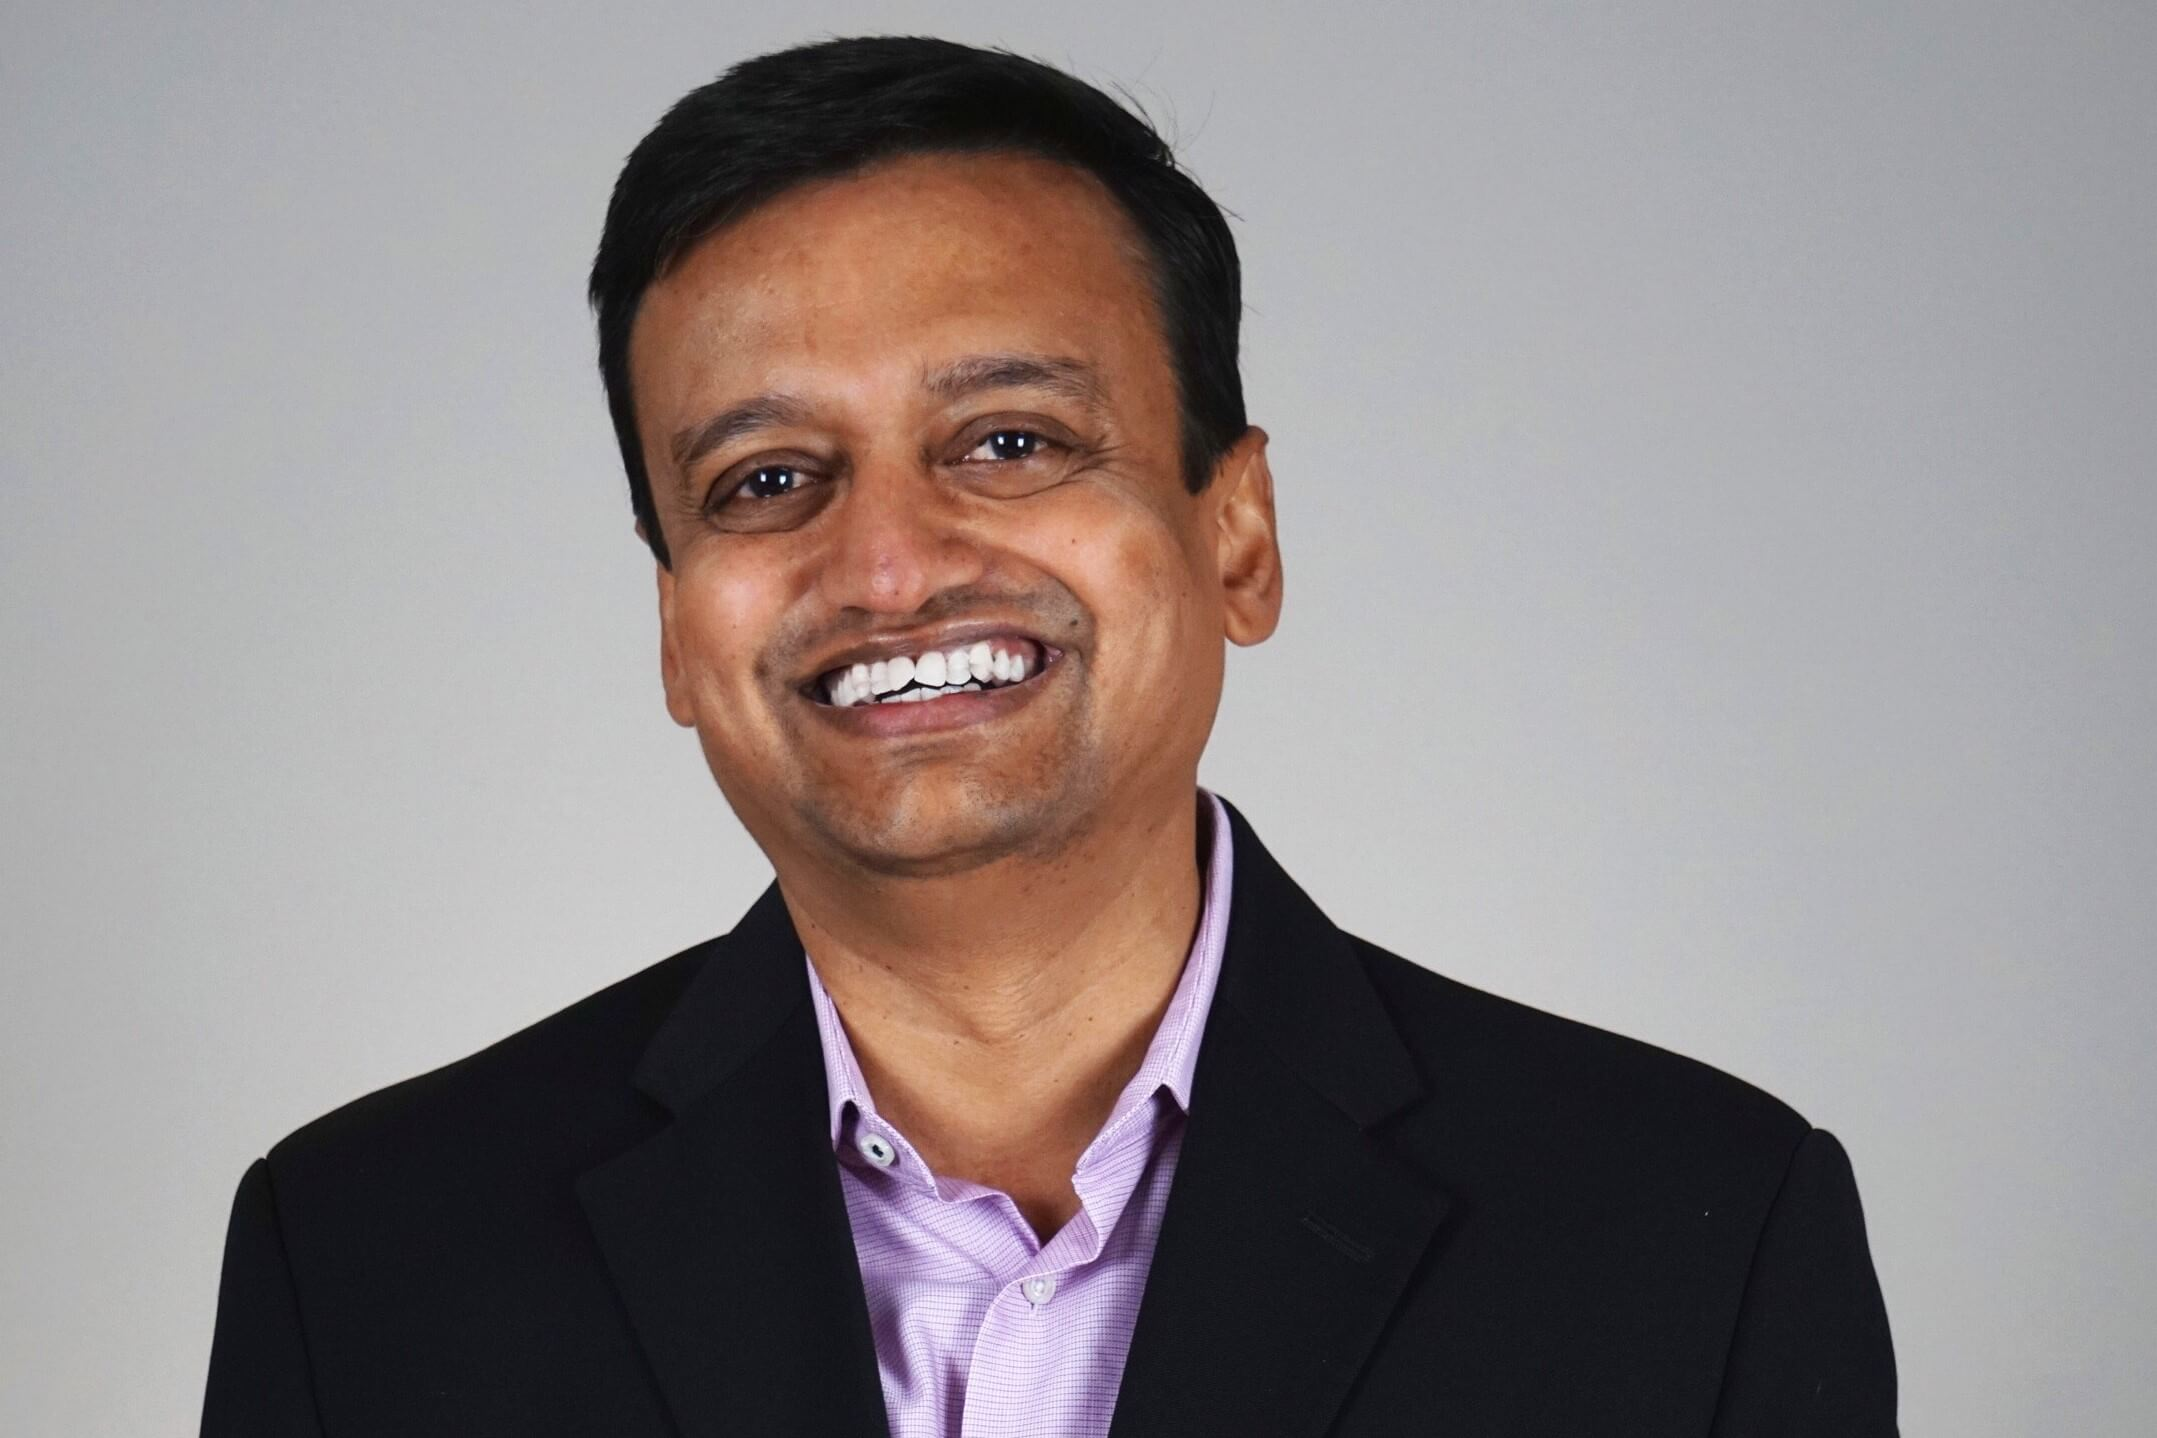 image of Udayan Bose to support article on how to deliver a digital marketing strategy